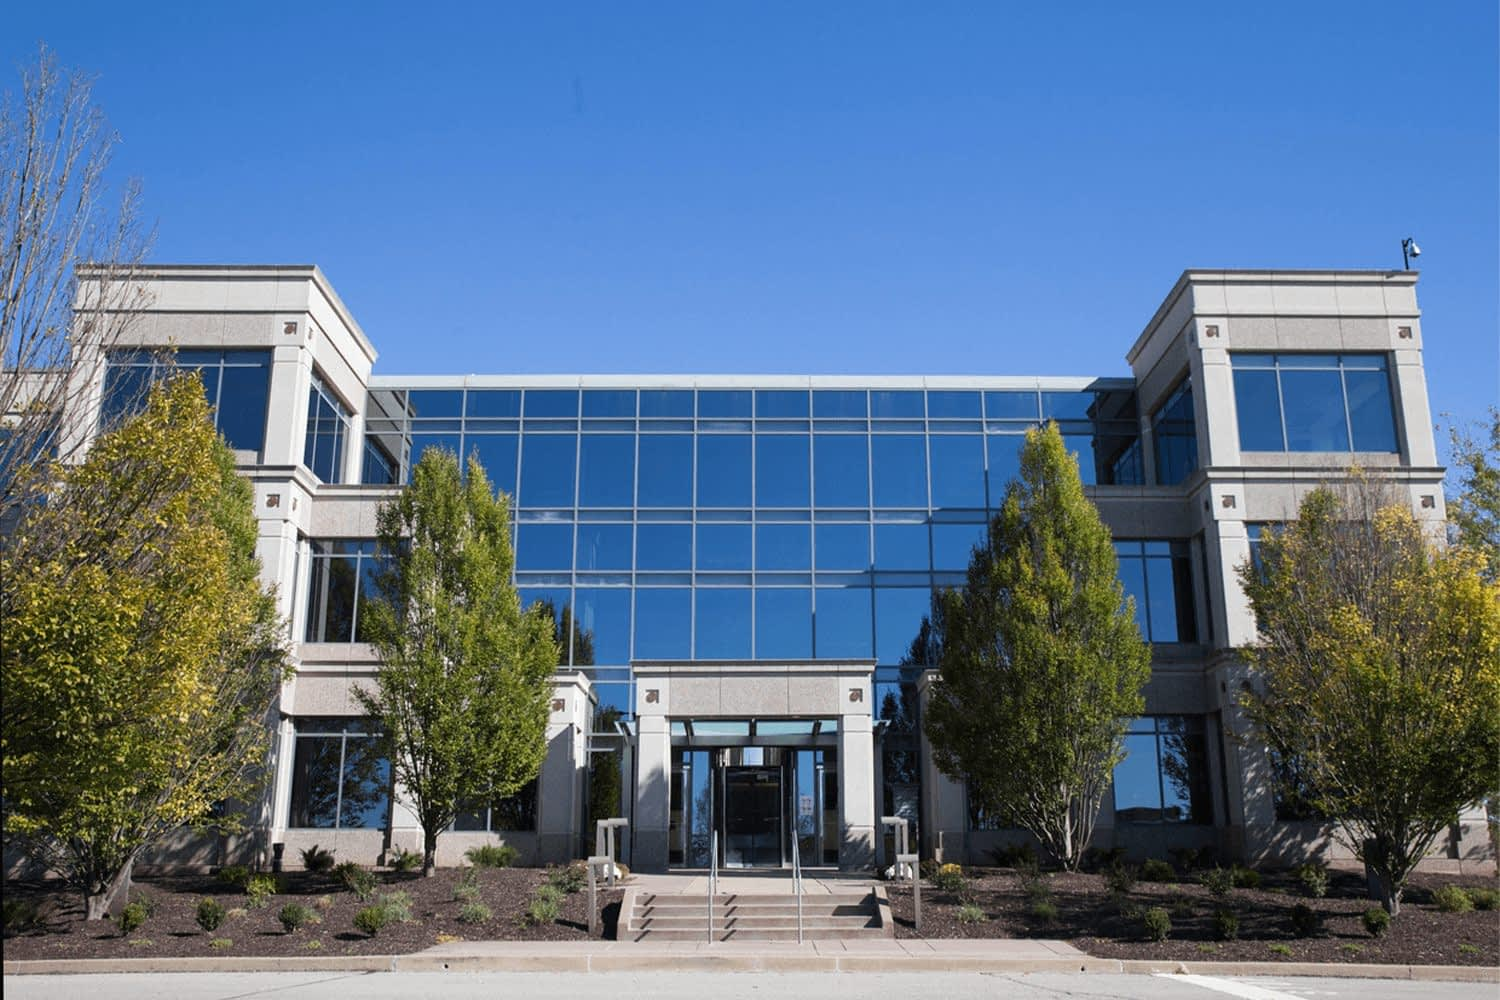 Exterior of 1000 GSK Drive: Building with large windows and trees in front of it